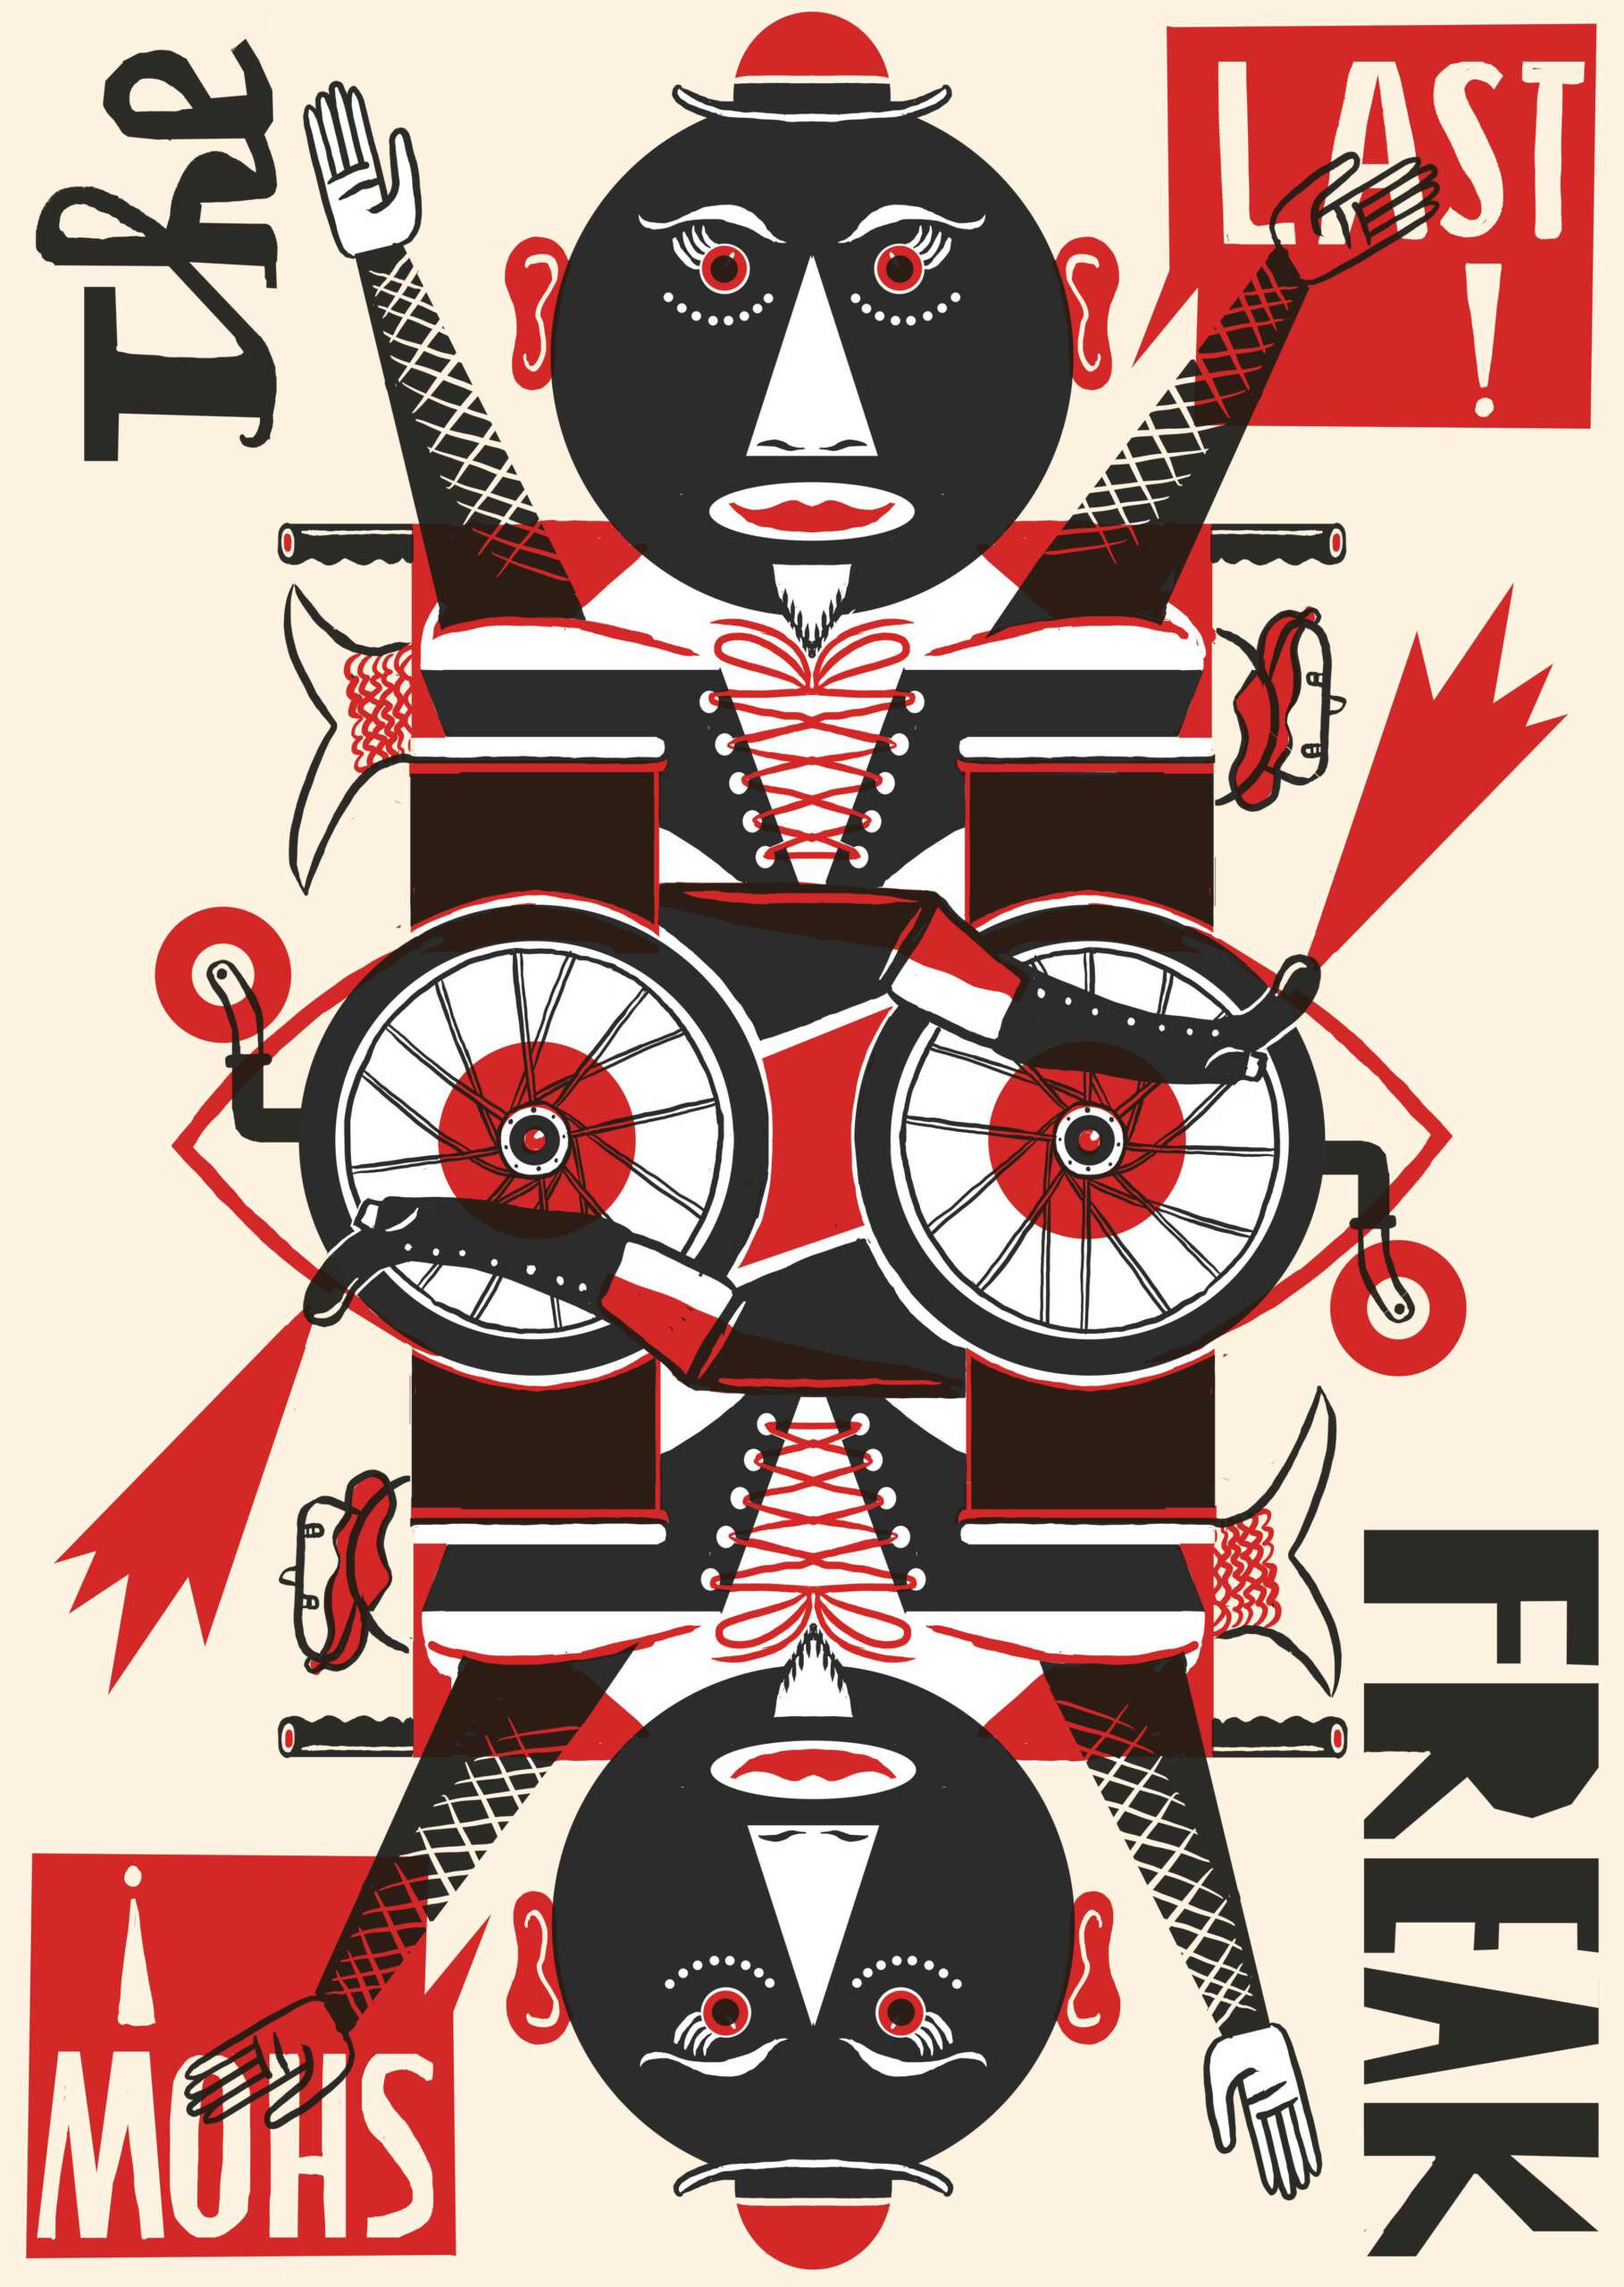 This piece with its mirrored central image is reminiscent of a playing card in it's composition. It features a flamboyant character, dressed in a lace-up bodice and mask, looking defiantly at the viewer. The figure, and the wheelchair in which he sits, are made-up of geometric shapes, his face is a perfect black circle with a white triangle nose, and an oval cut out around the mouth. The image is bold and striking, using black, white and red on a cream background. One word, from the phrase, The Last Freak Show, is written in each of the four corners of the page.